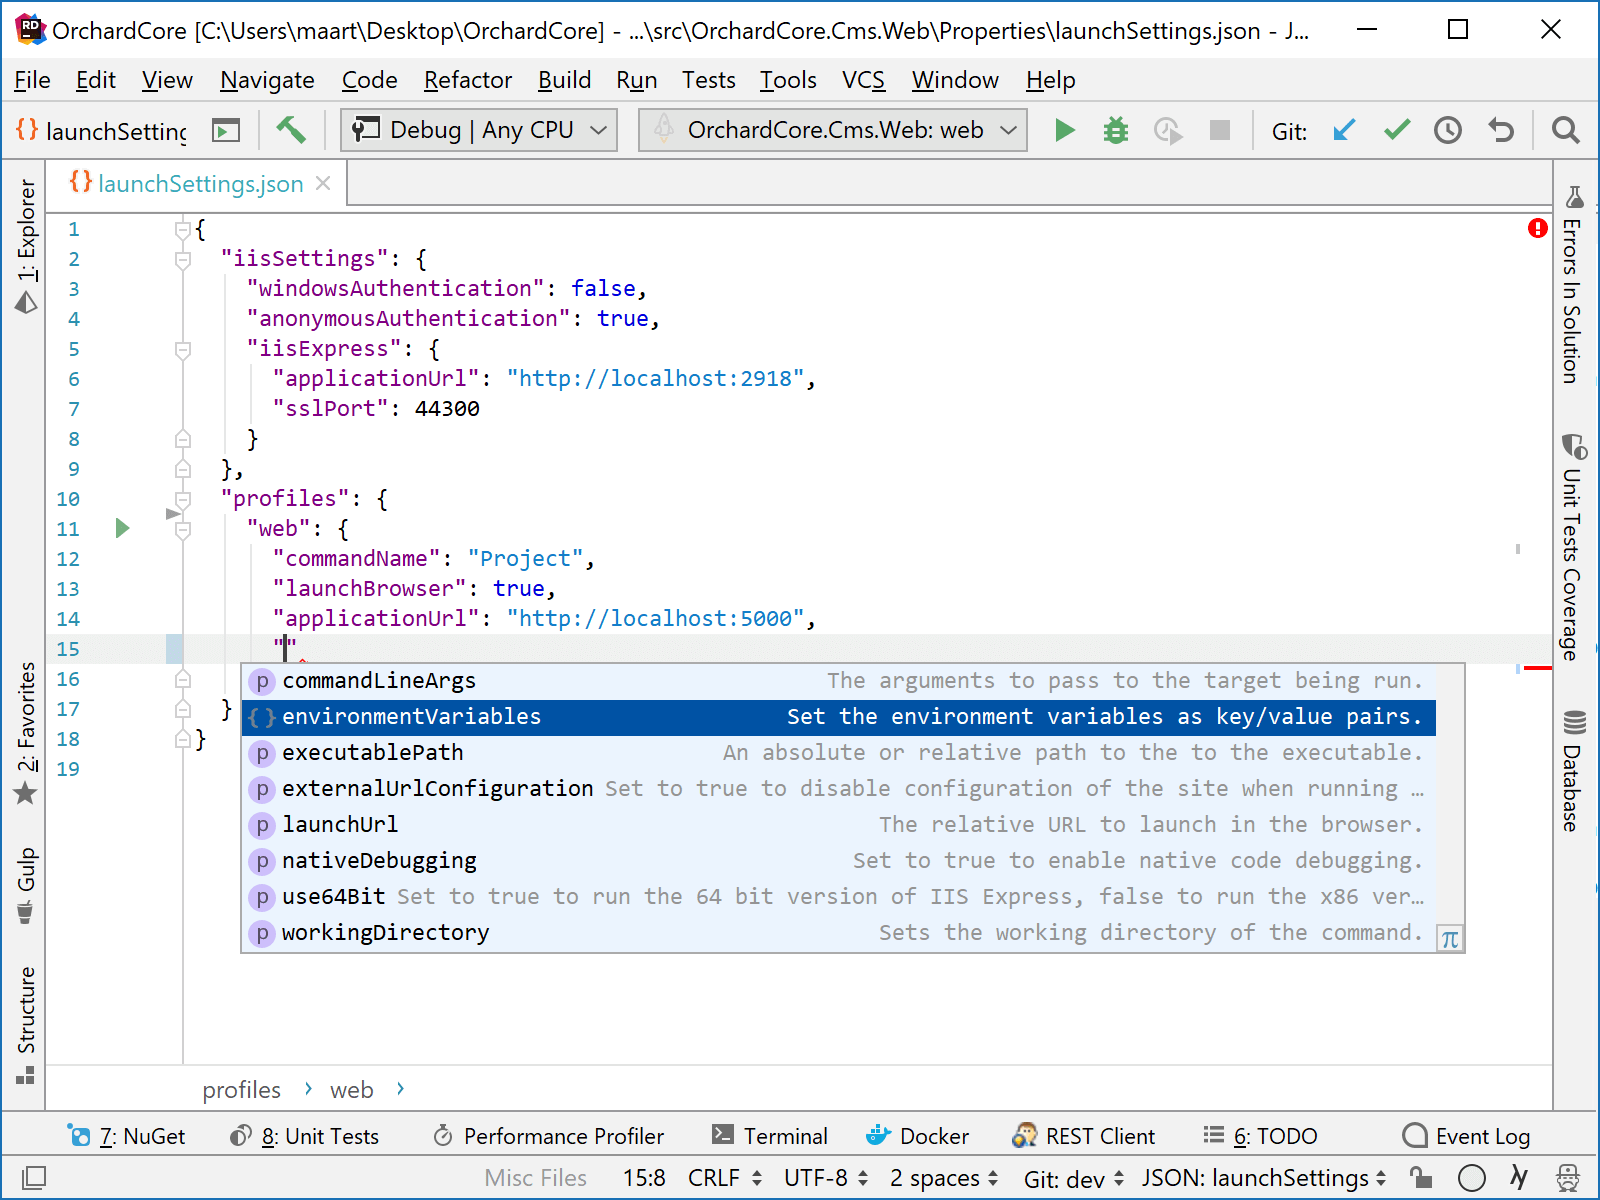 JetBrains Rider: Coding assistance for editing launchSettings.json